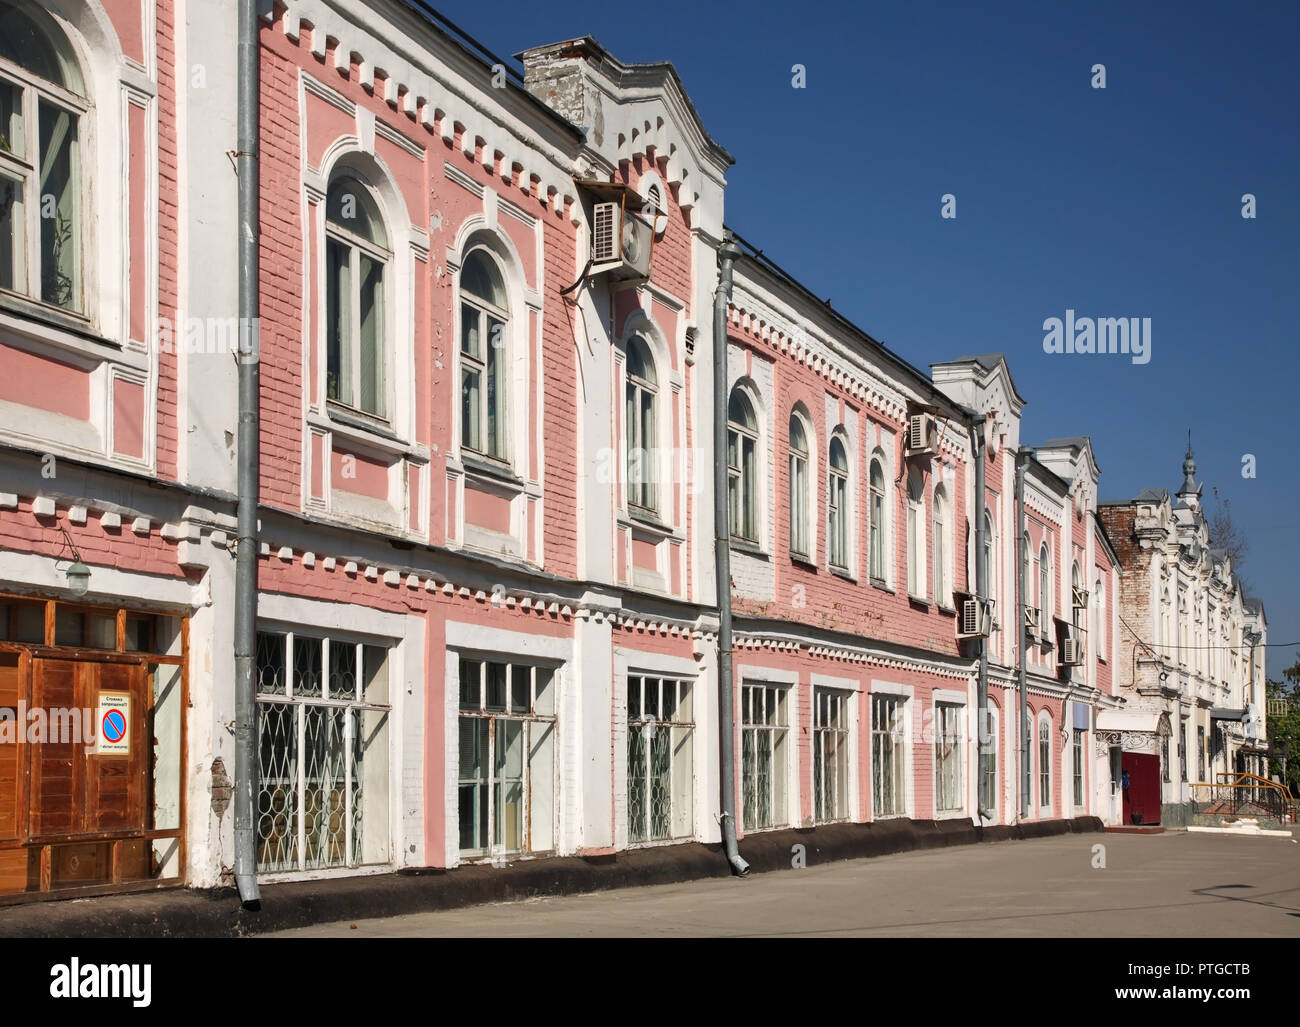 Sights of Biysk. Biysk, Altai Territory